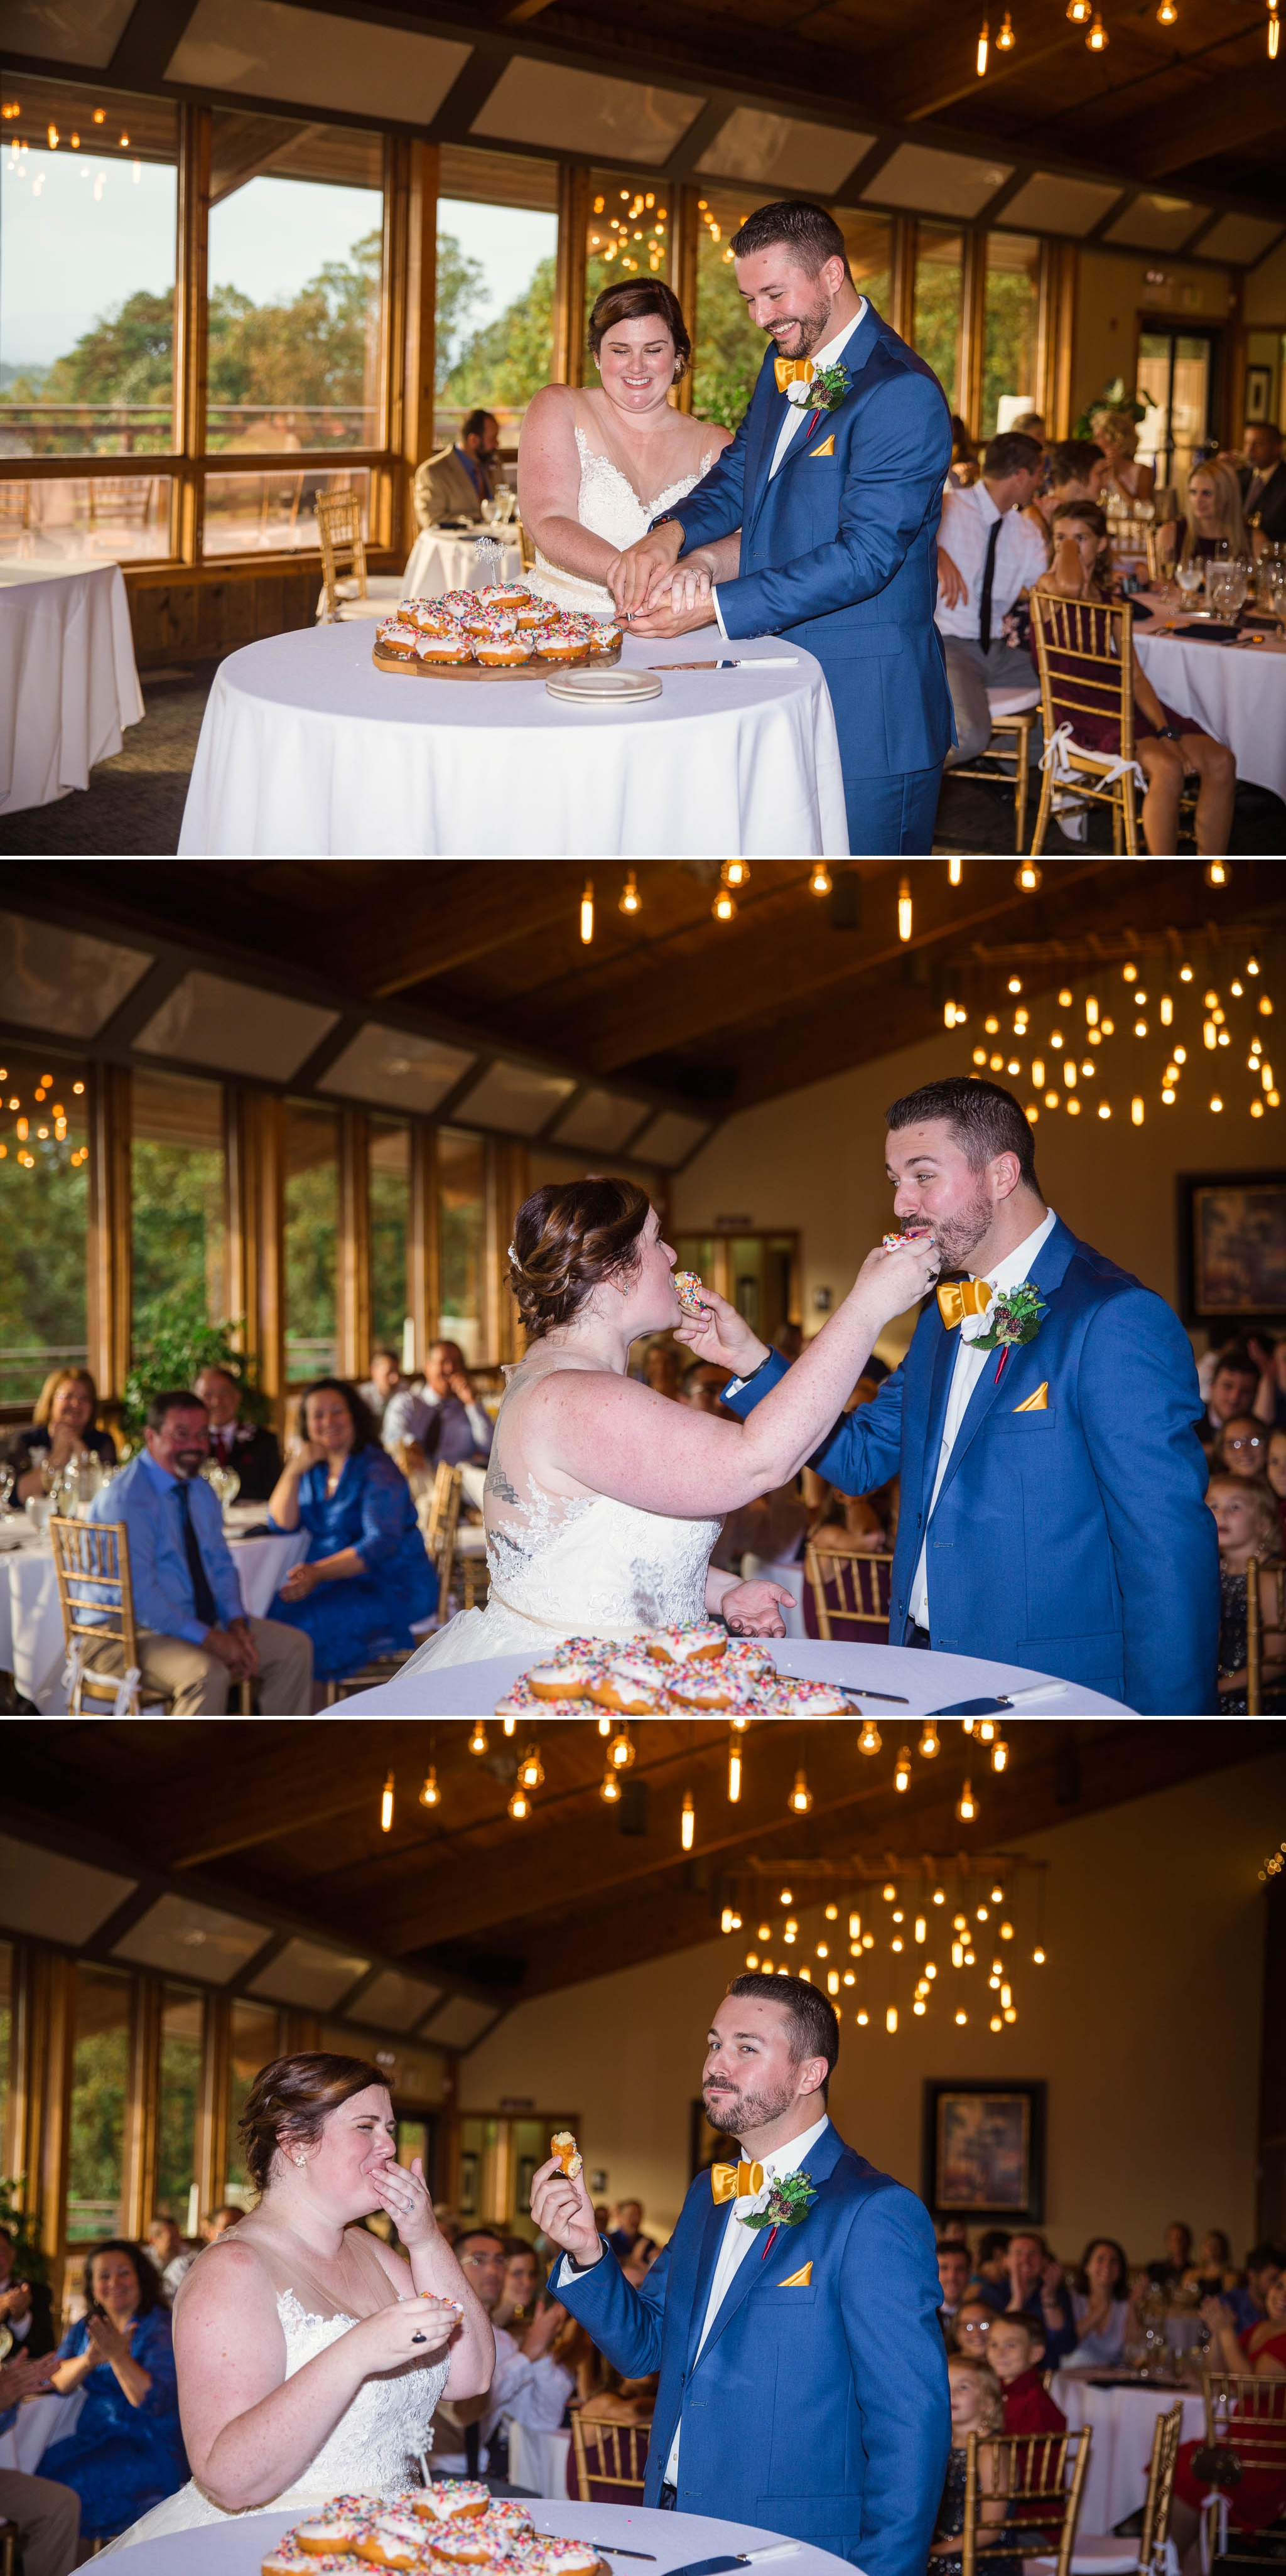 Bride and Groom cutting a donut - Meredith + Jason - The Crest Center and Pavilion in Asheville, NC - Raleigh Wedding Photographer